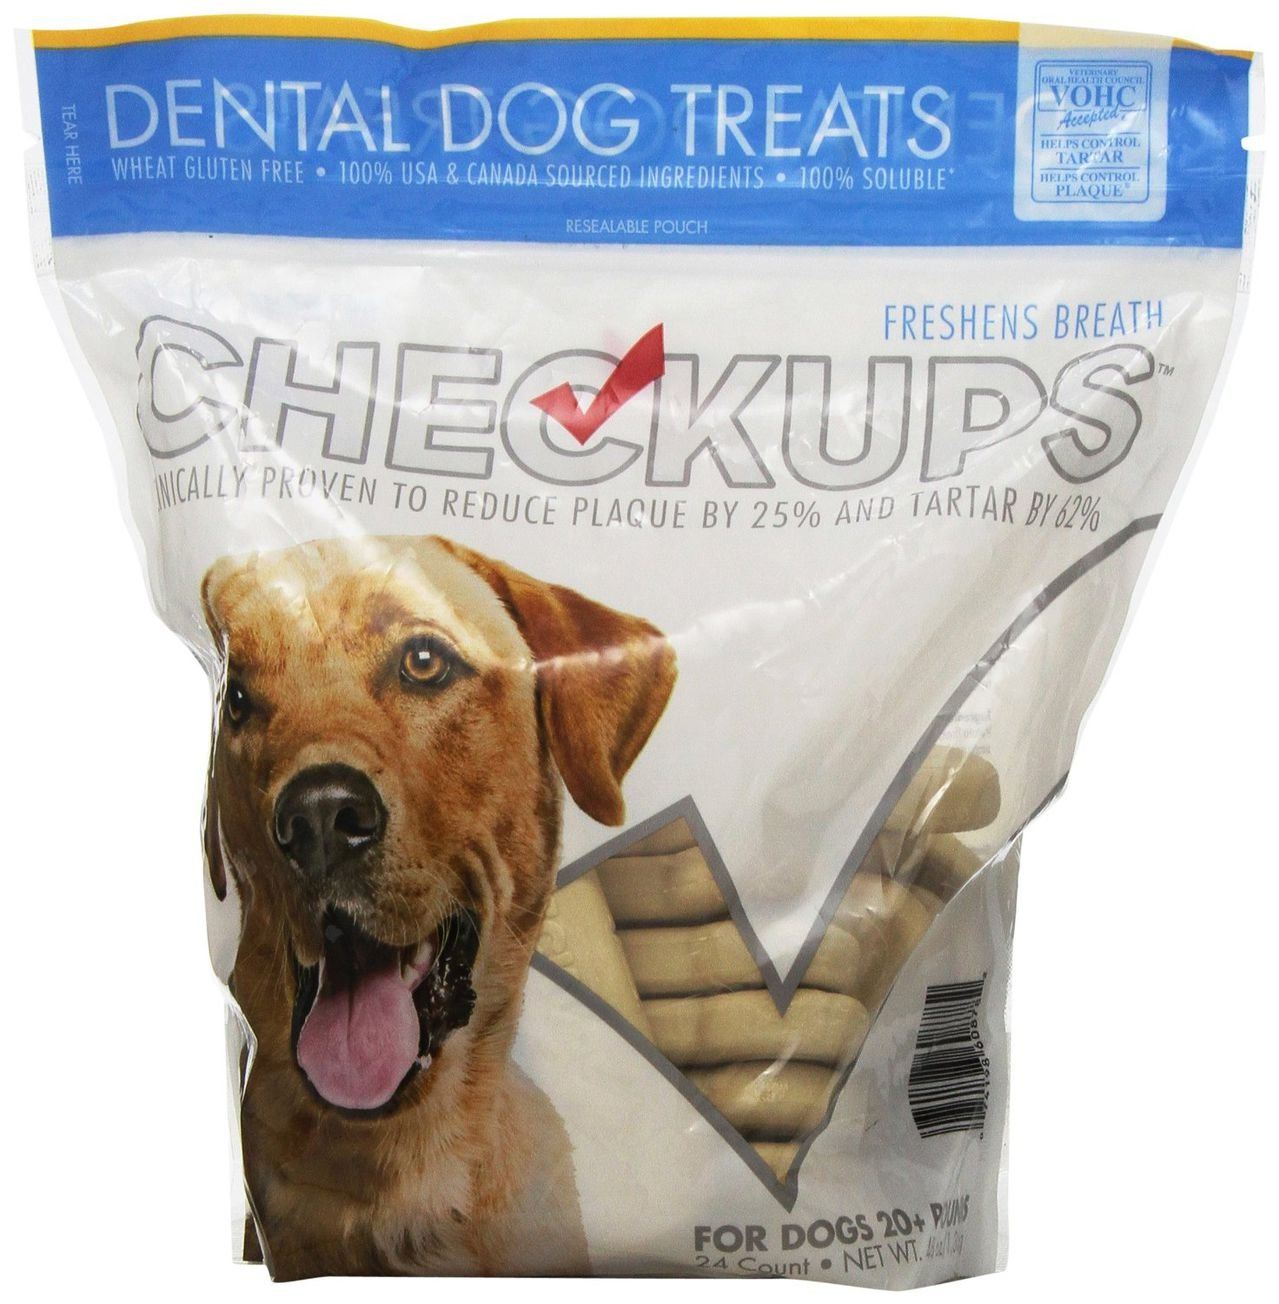 Checkups- Dental Dog Treats, 24ct 48 oz. for Dogs Pack of 2 fj